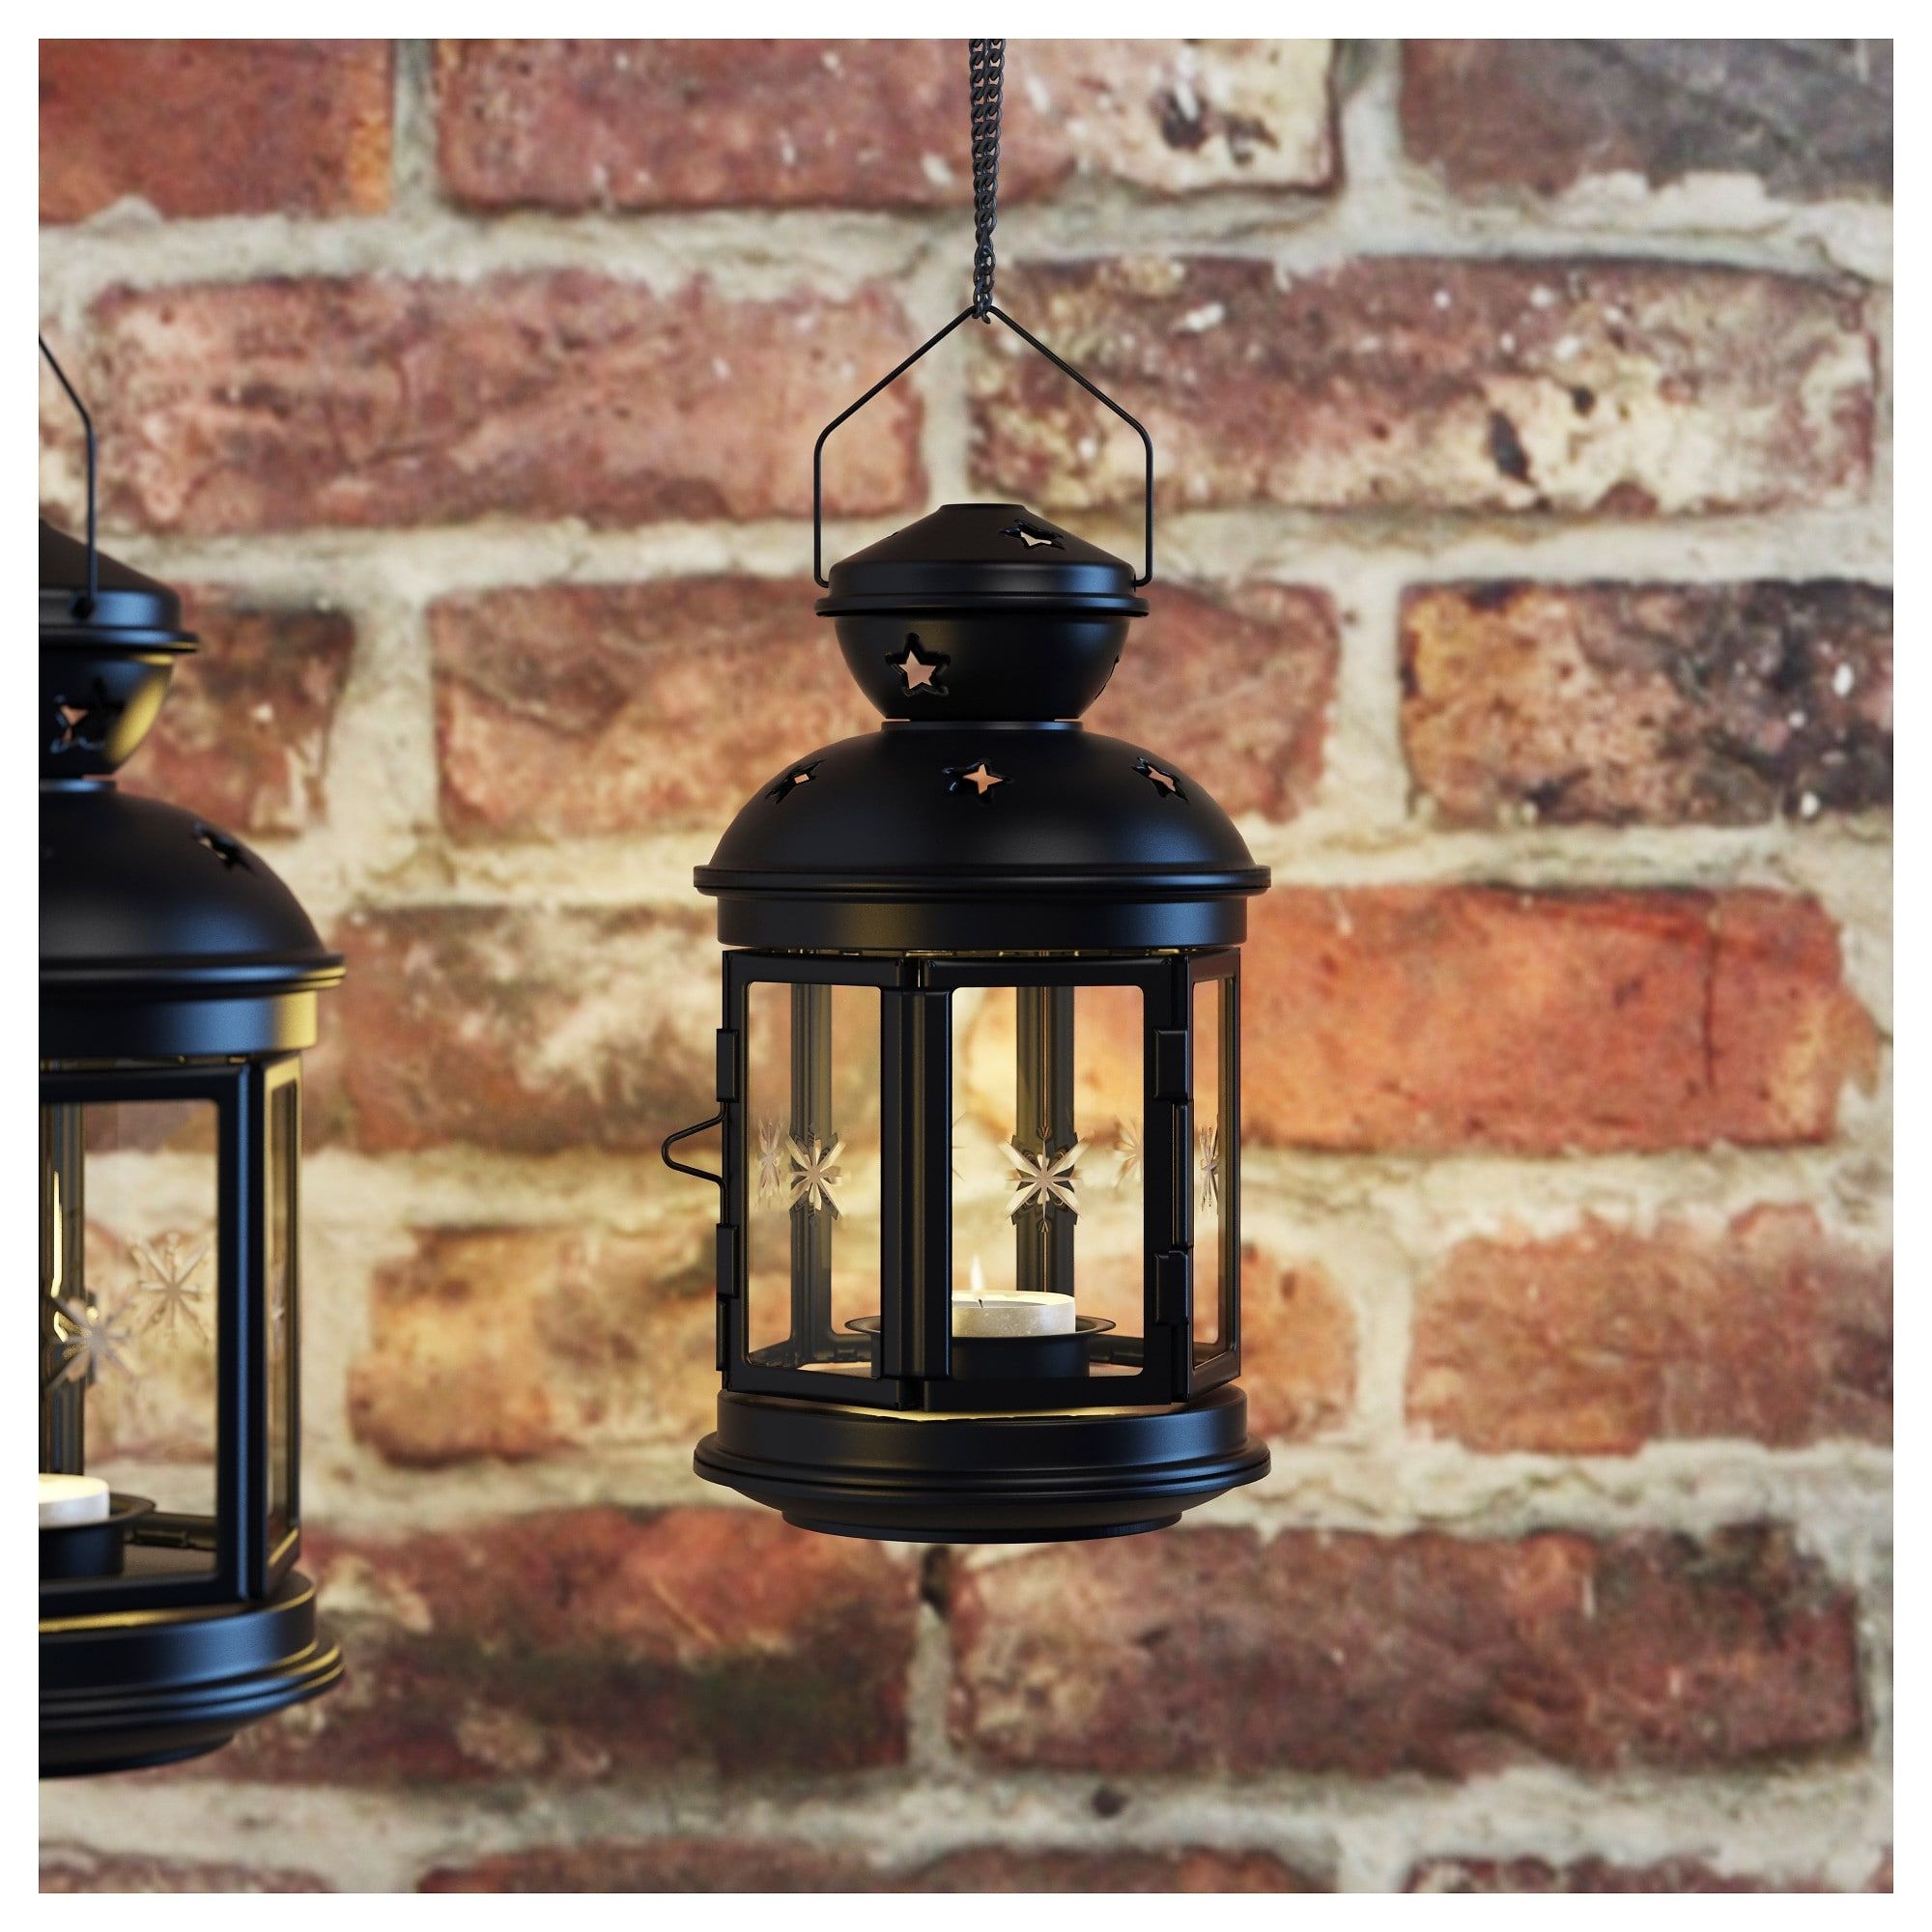 Rotera Lantern For Tealight – Ikea Intended For Fashionable Ikea Outdoor Lanterns (Gallery 11 of 20)